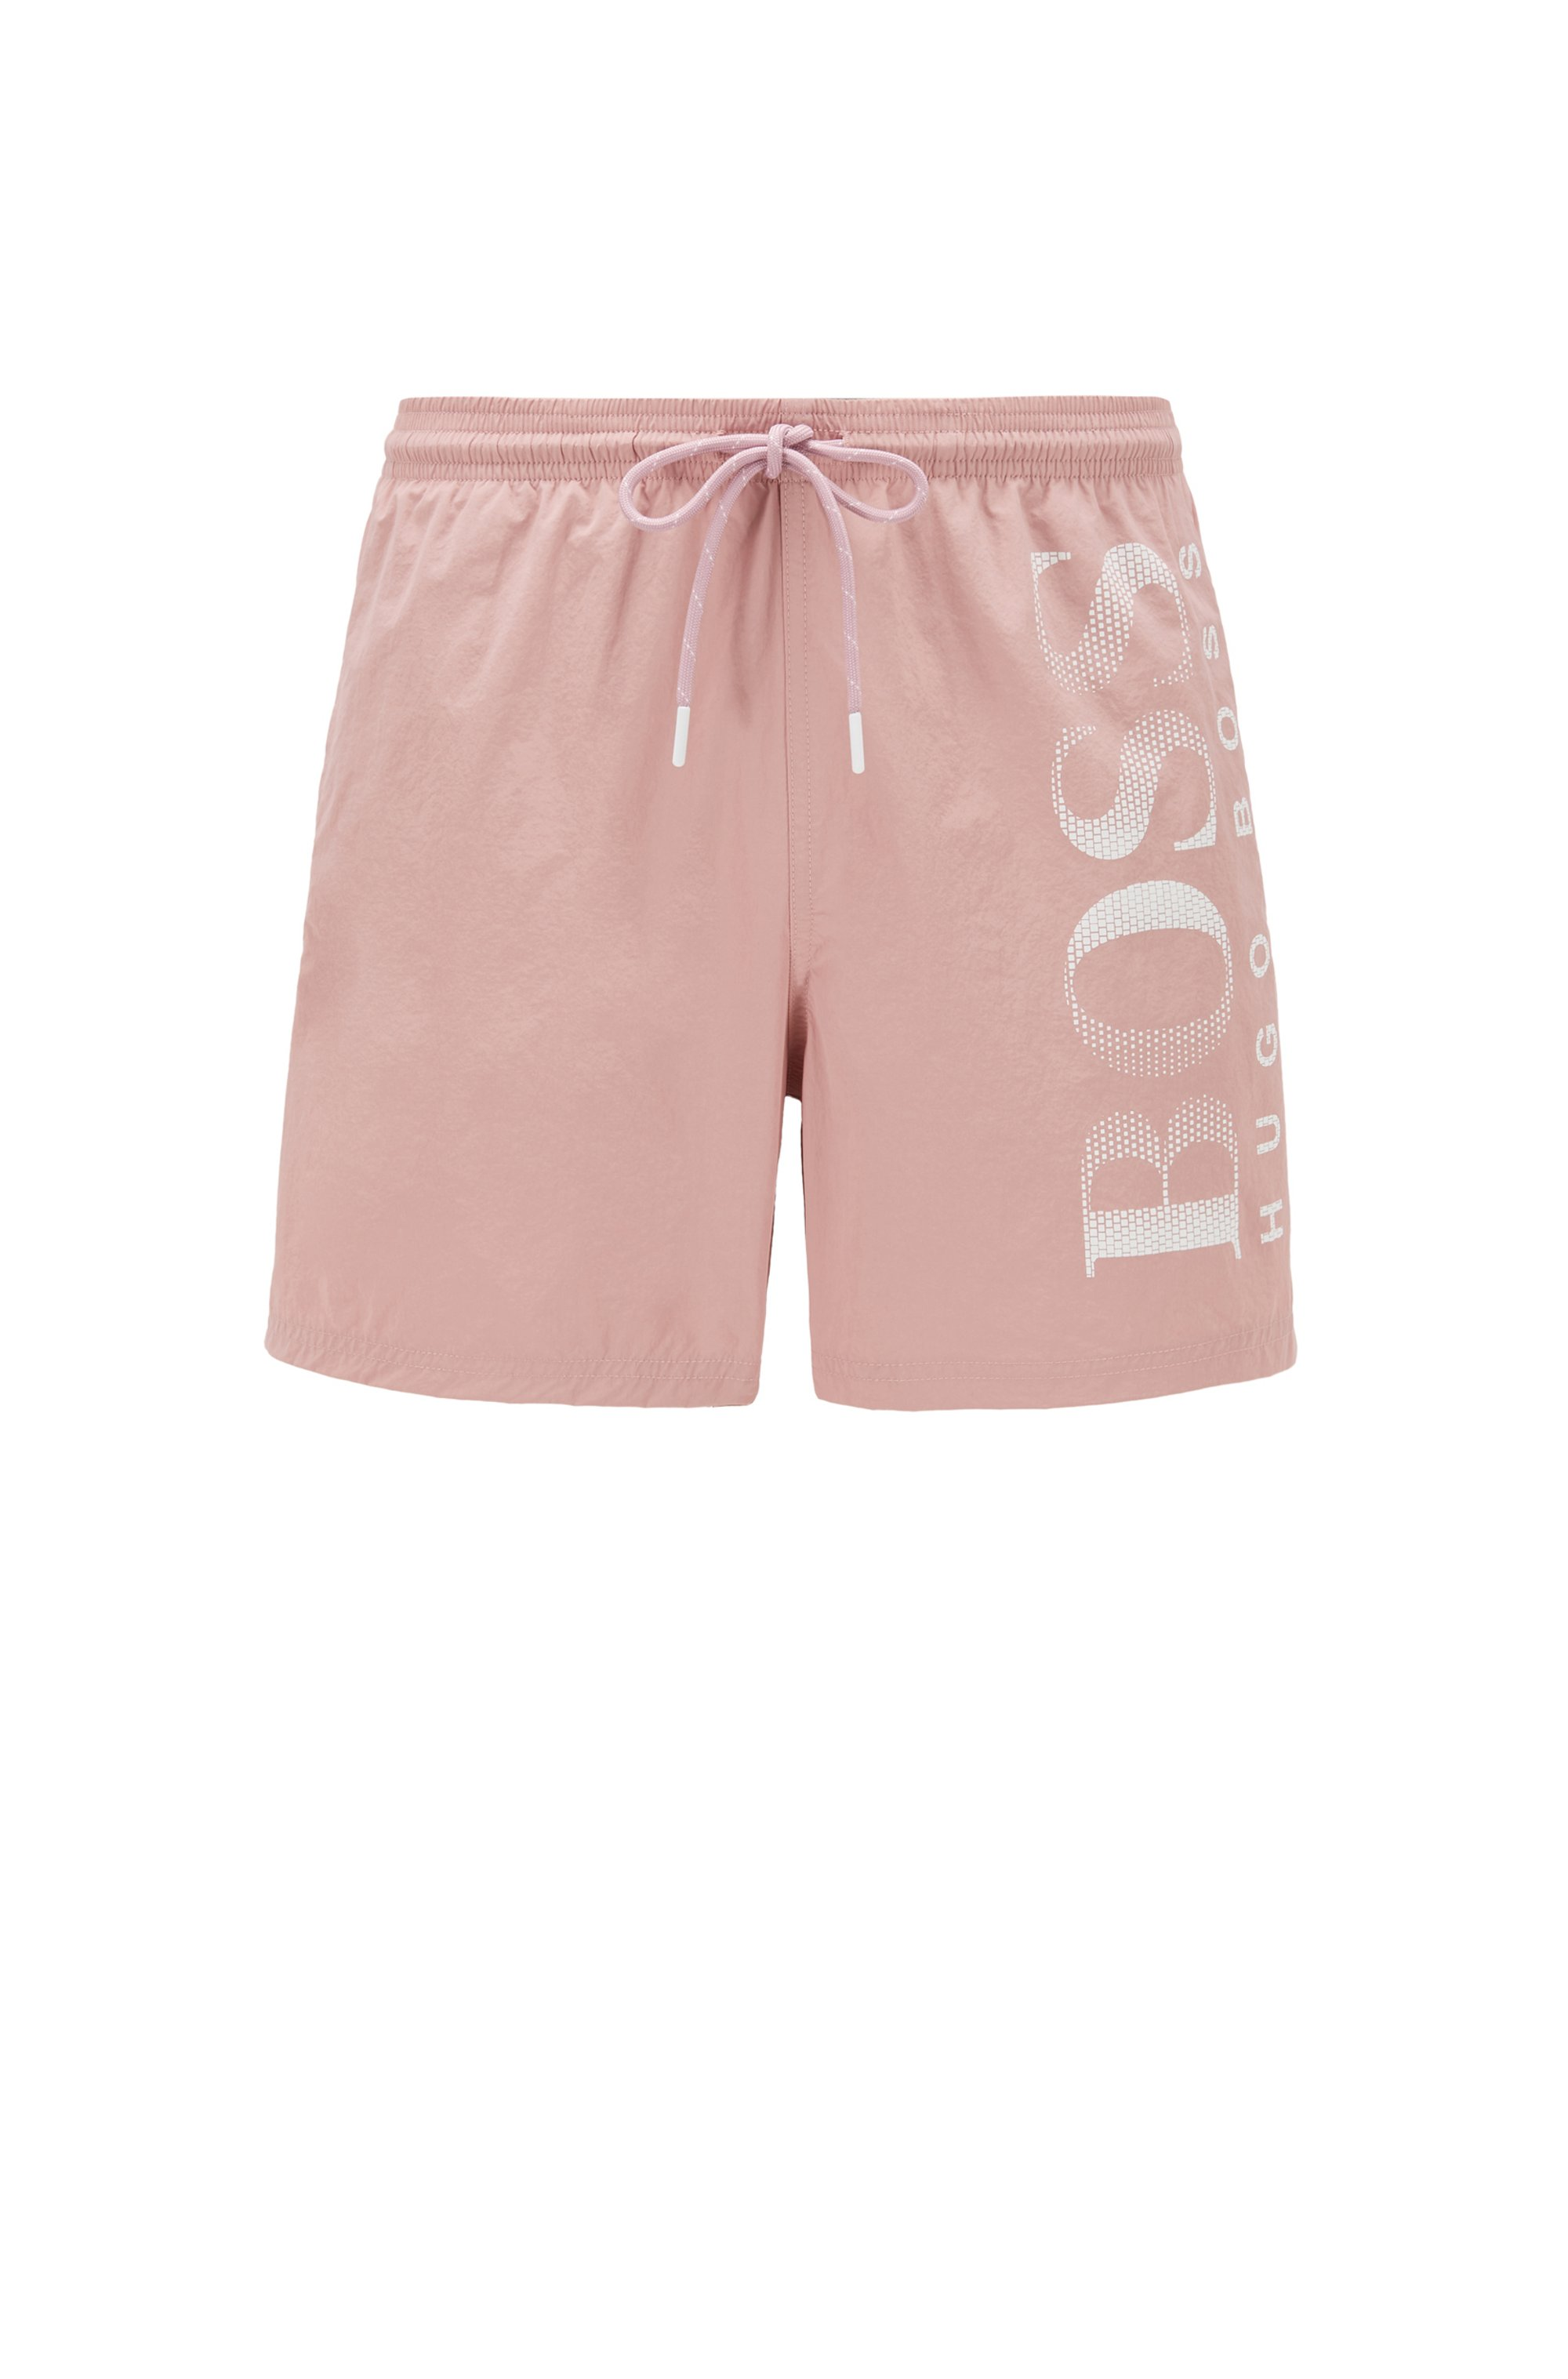 Logo-print swim shorts in technical fabric, light pink